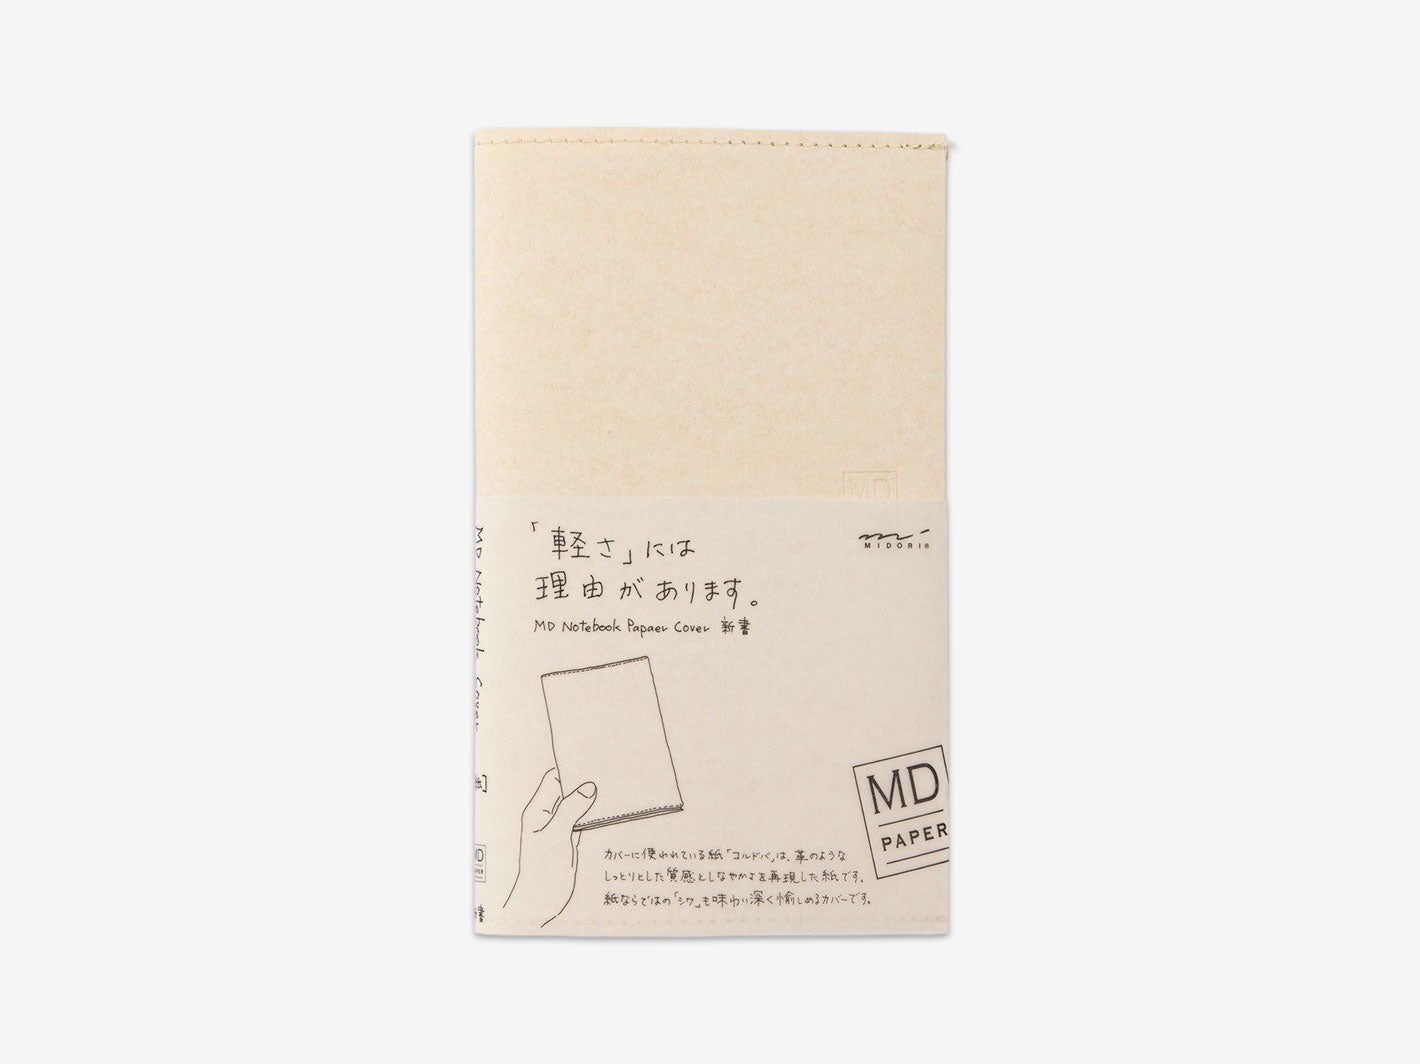 MD Notebook Paper Cover S